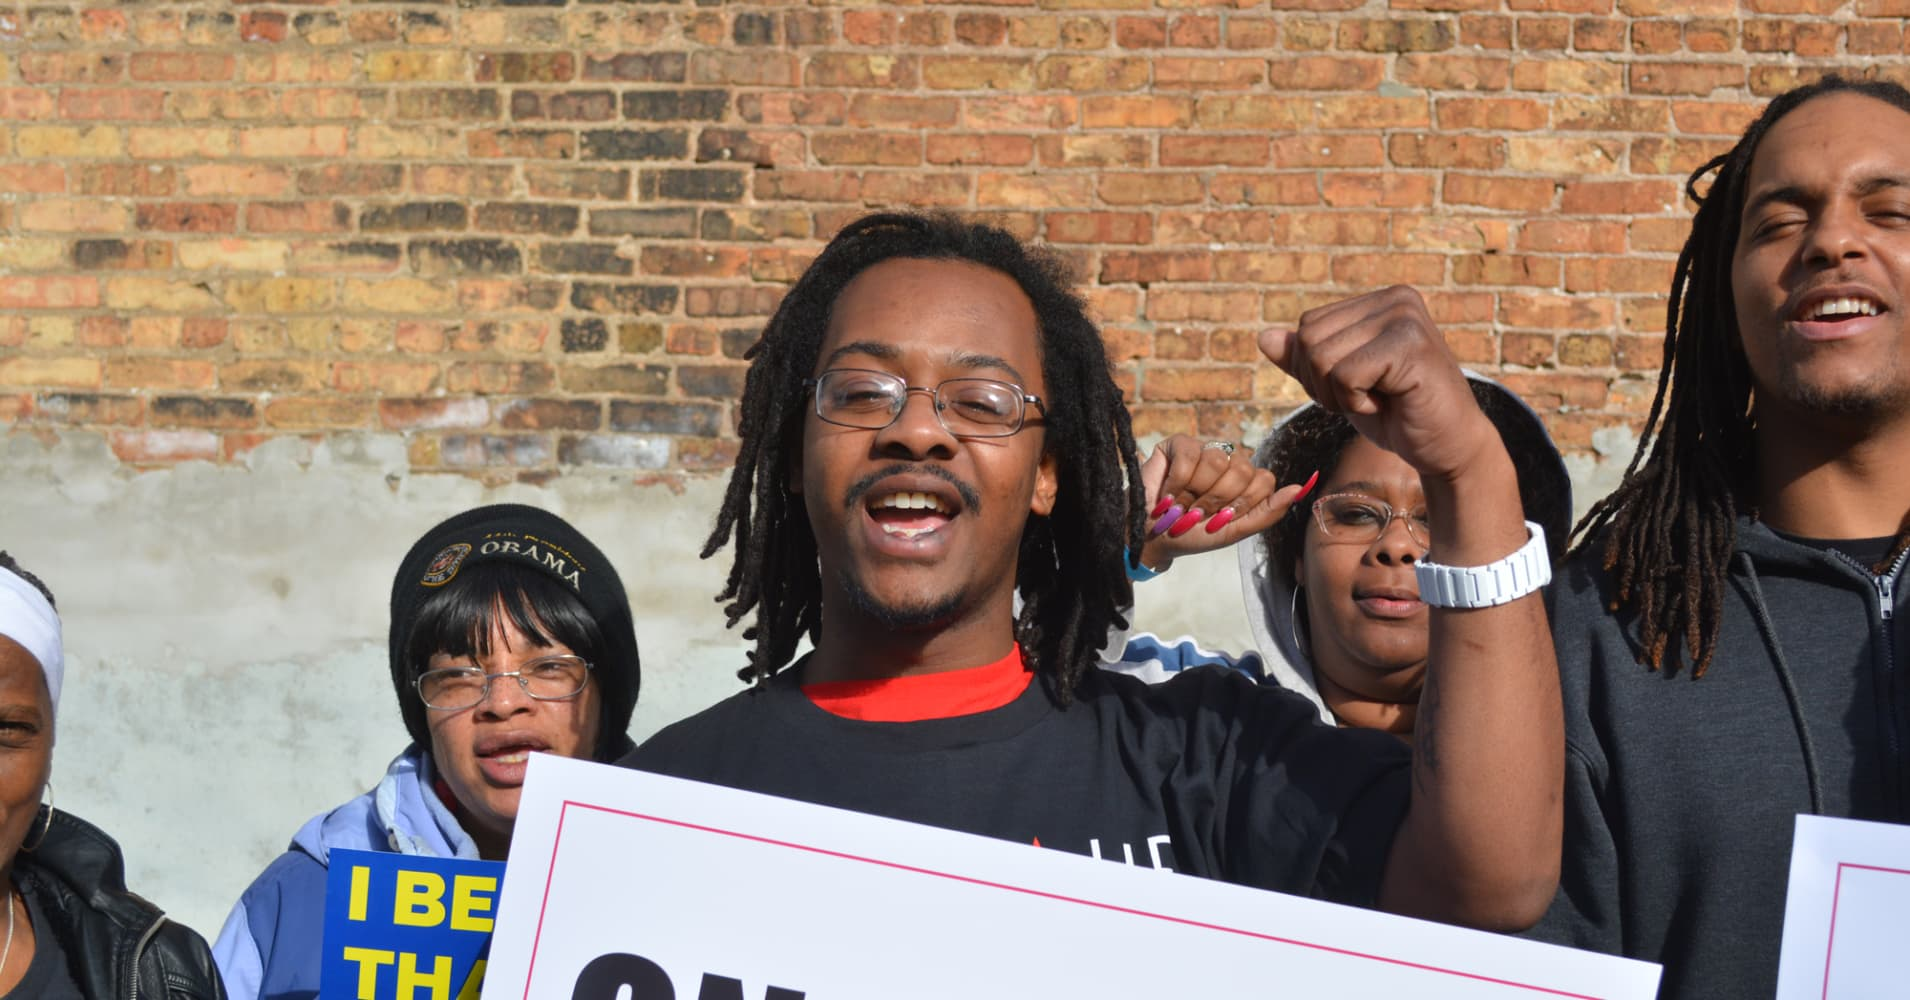 Fight for $15: McDonald's workers protest to raise minimum wage